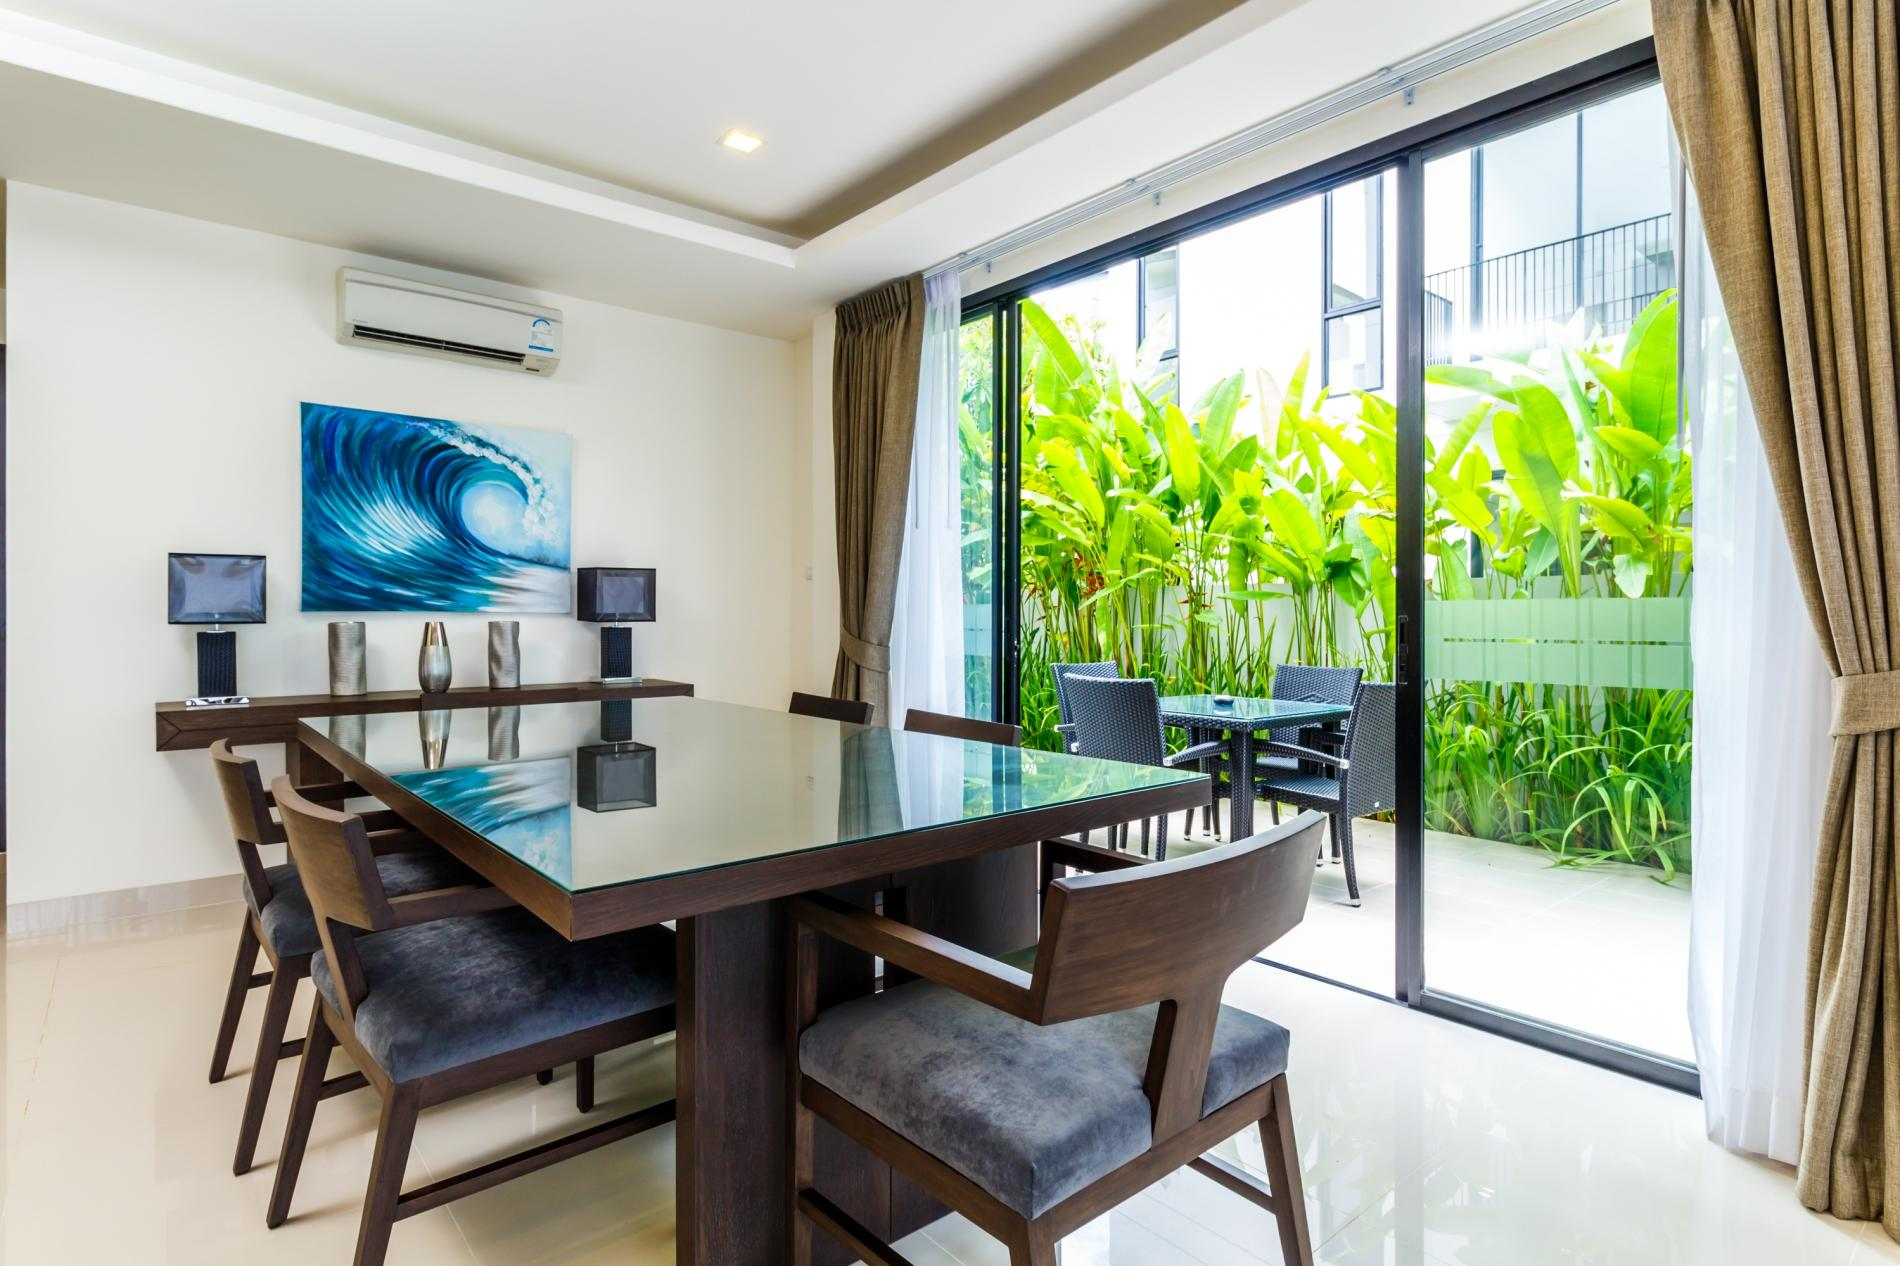 LP101 - Private rooftop pool villa in Laguna for 9 people, near restaurants and shops photo 16516905